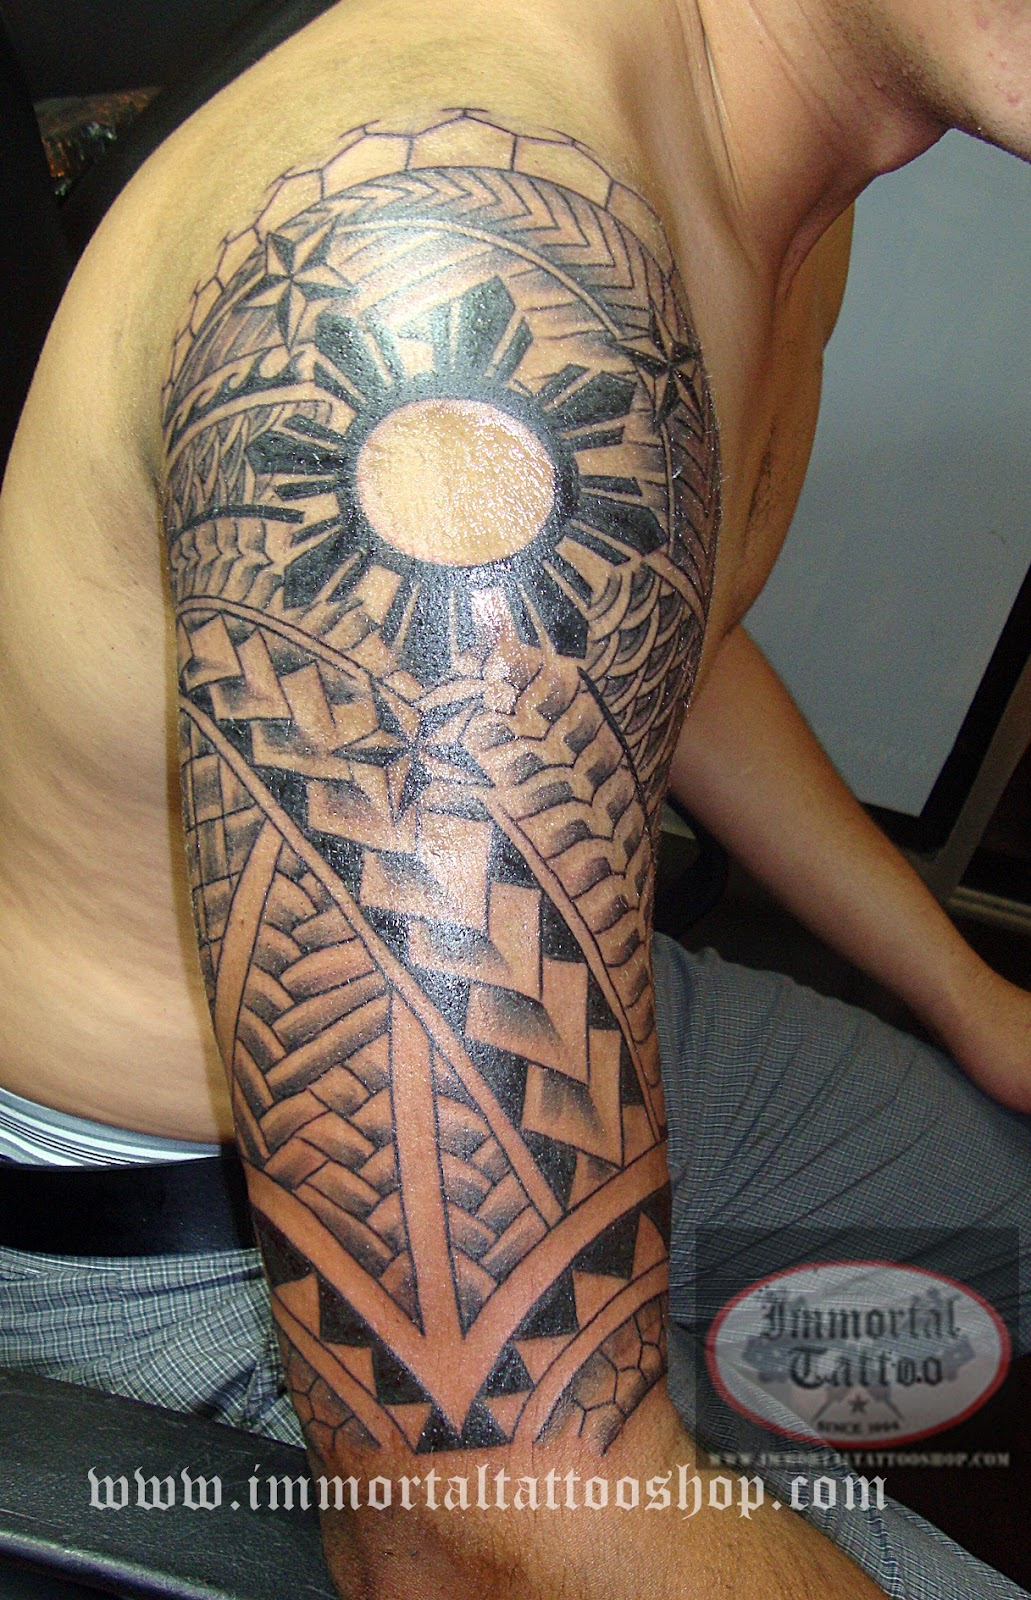 FILIPINOTATTOO